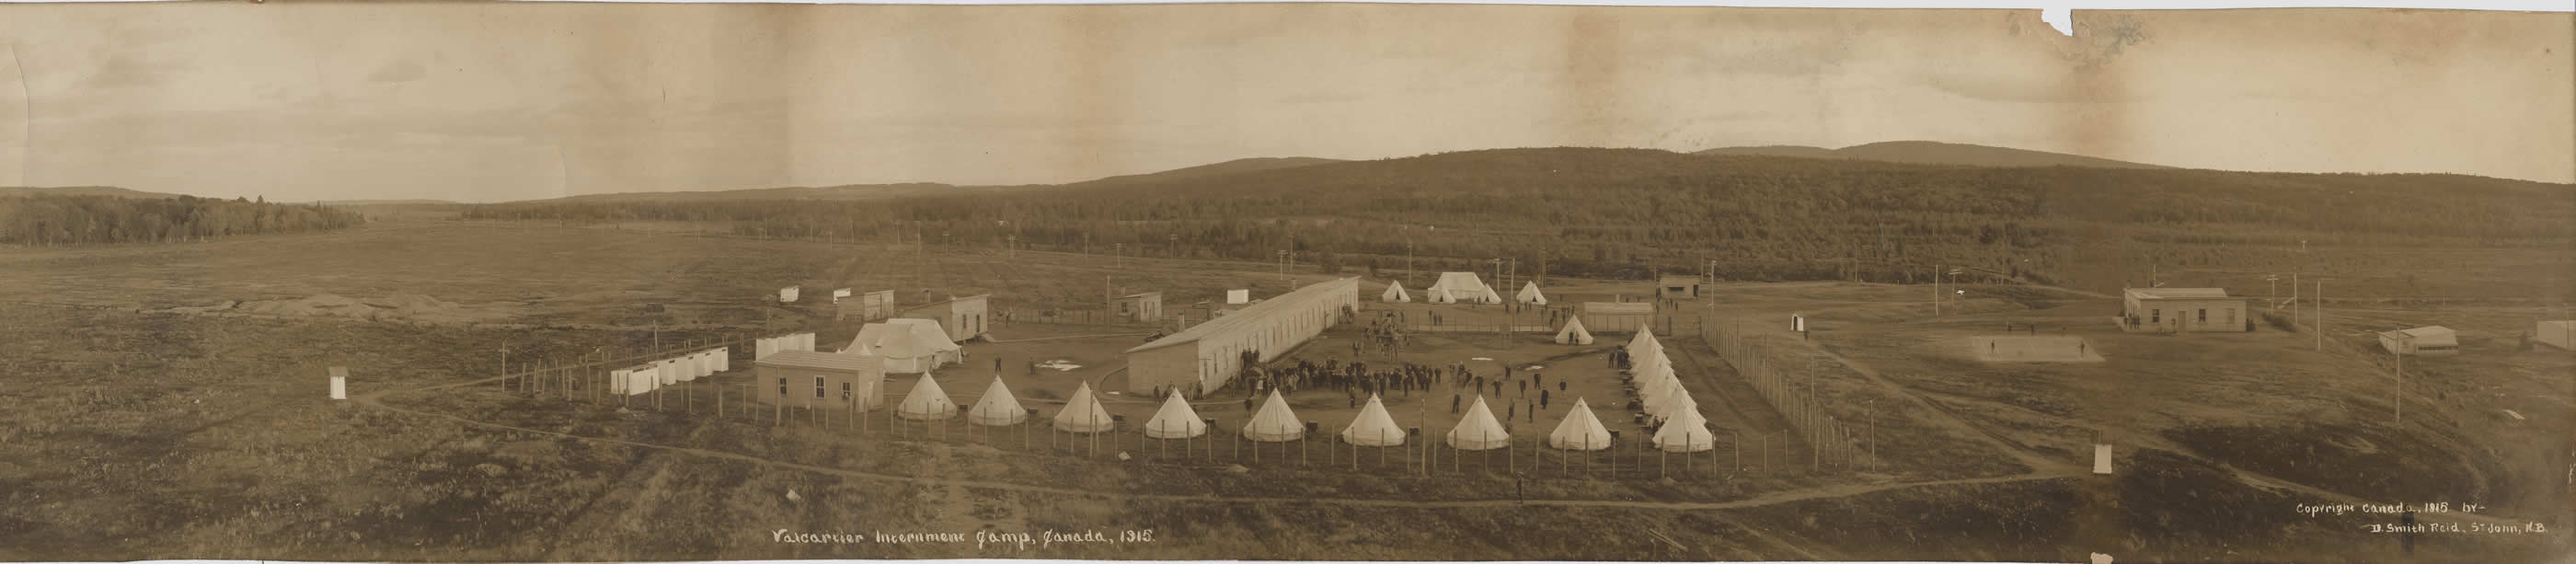 Camp d'internement de Valcartier